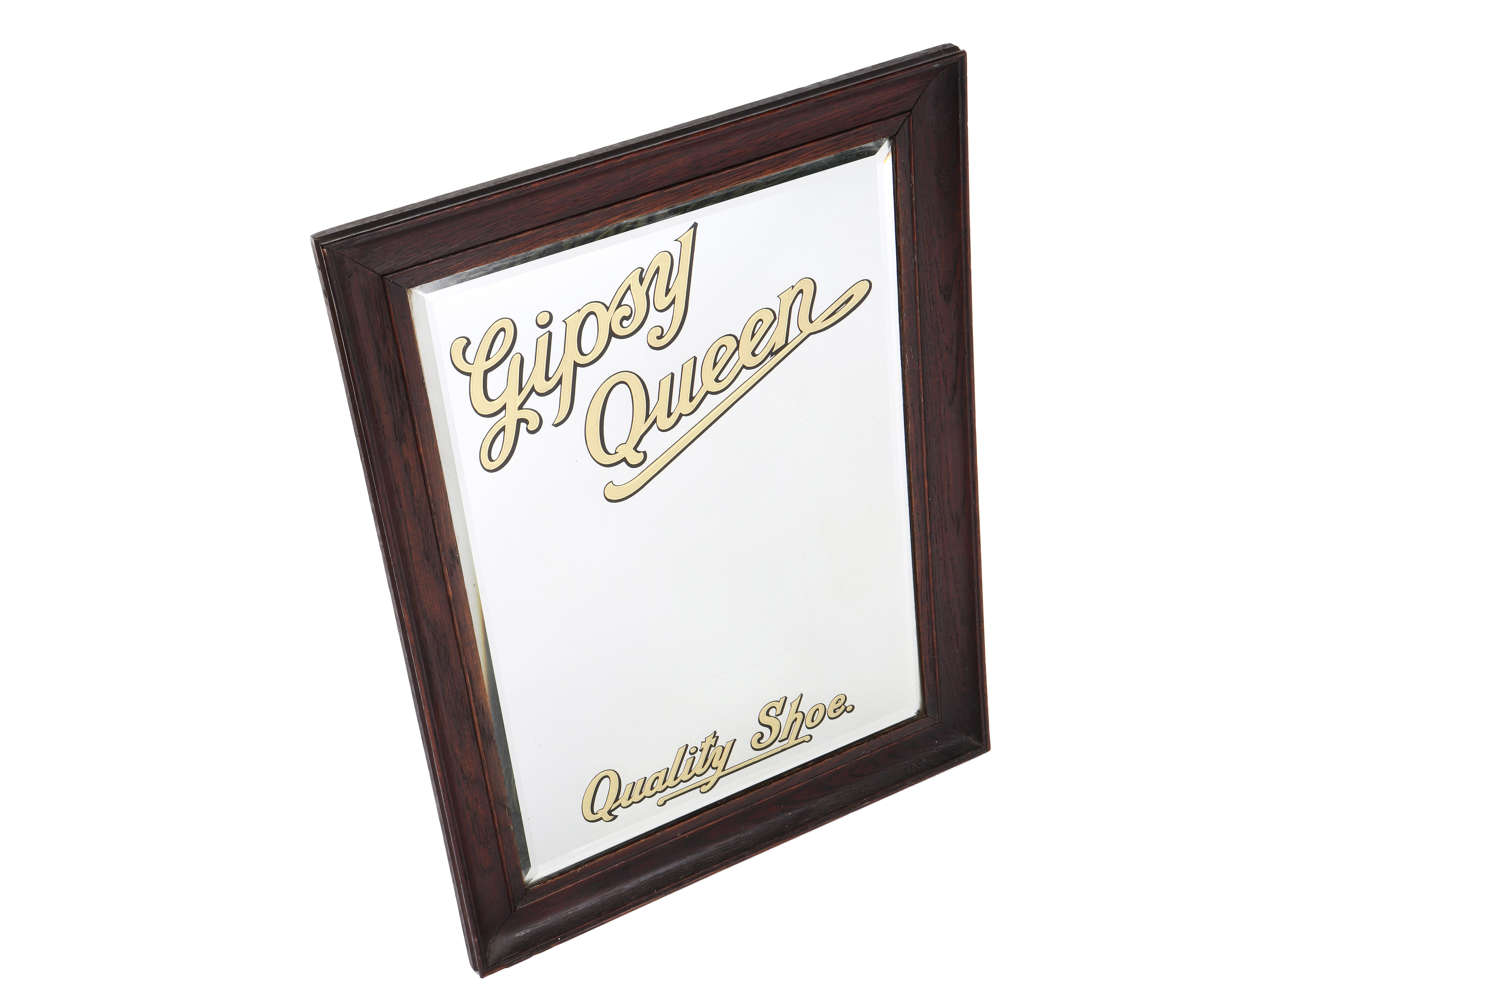 Original vintage advertising mirror for Gipsy Queen Shoes